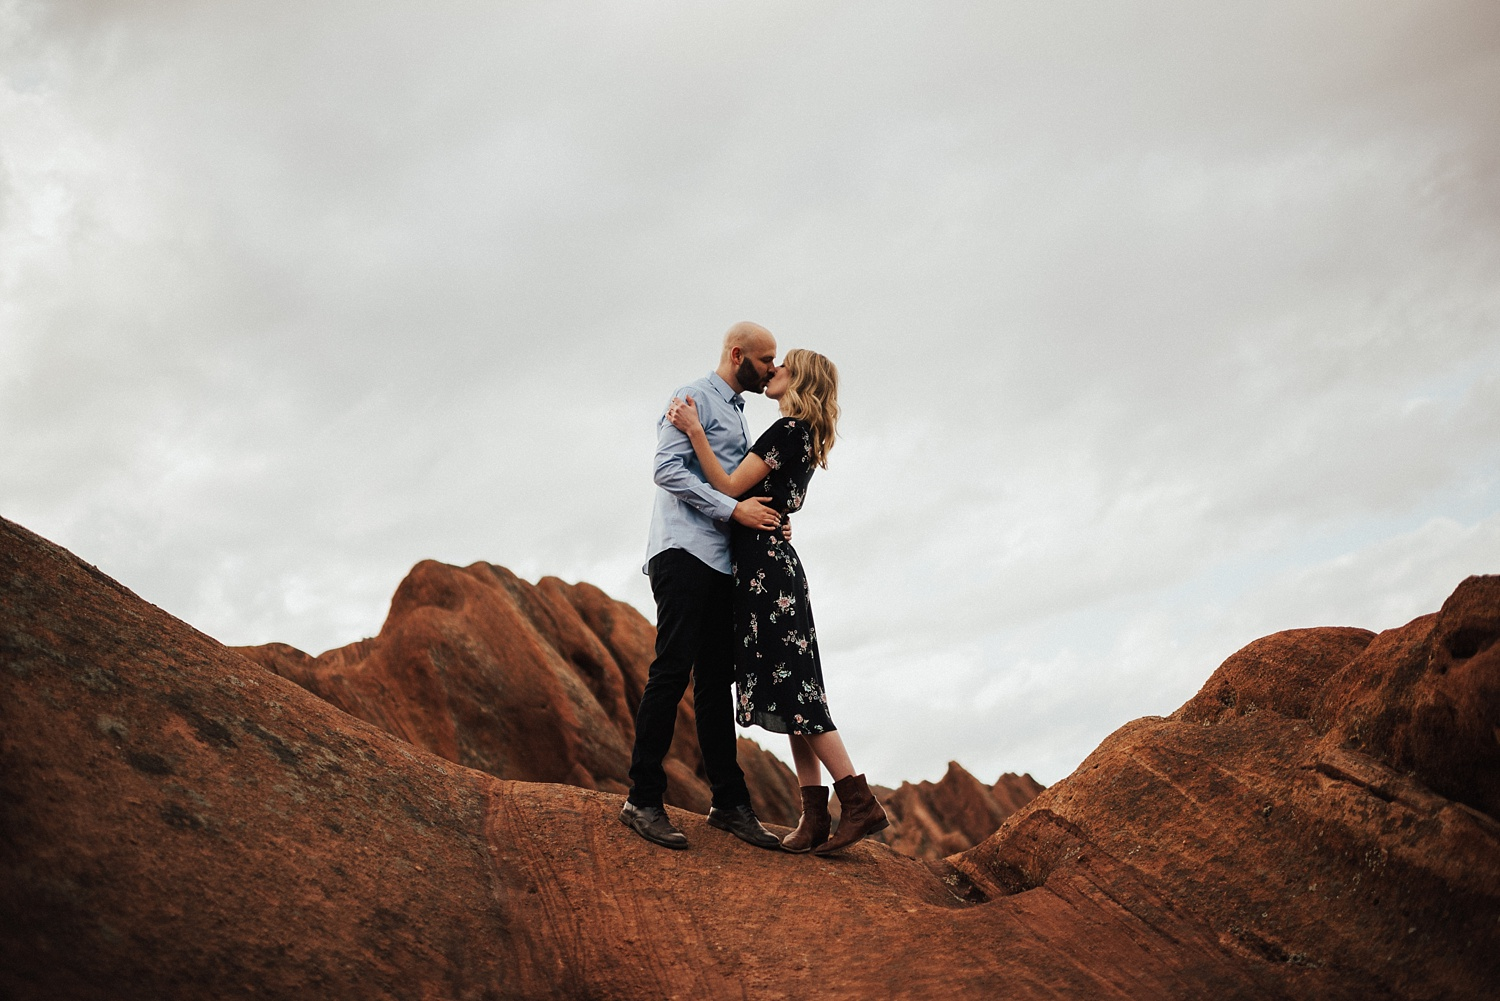 Nate_shepard_photography_engagement_wedding_photographer_denver_colorado_0273.jpg